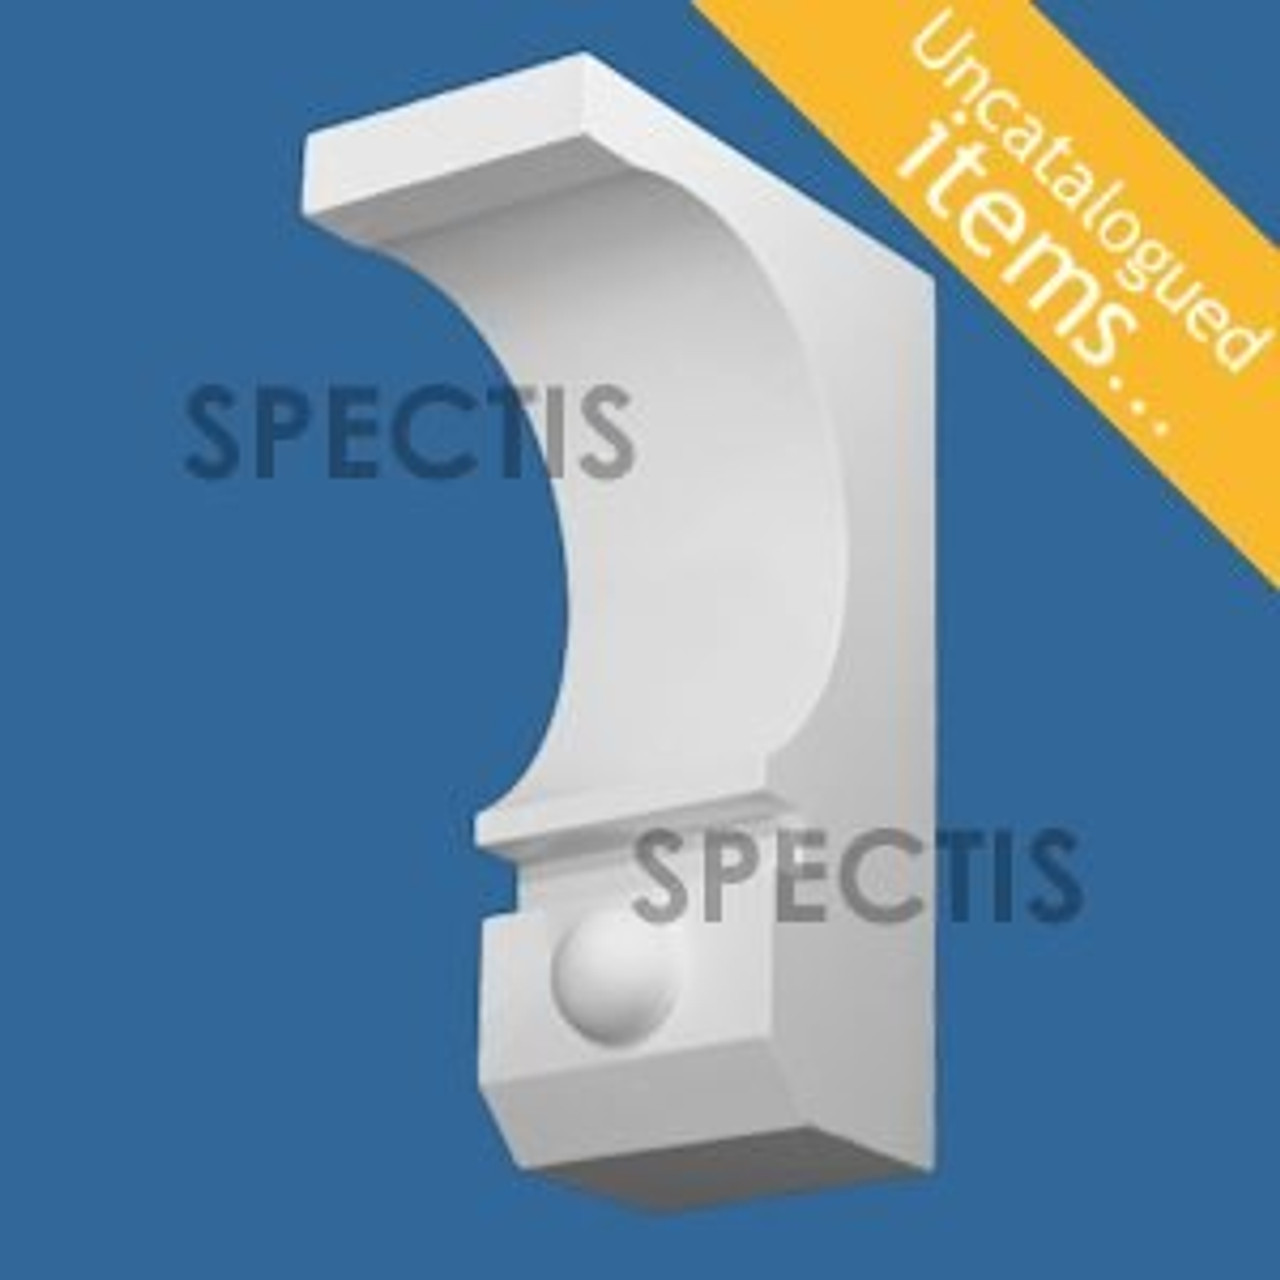 """BL3019 Spectis Eave Block or Bracket 5""""W x 14""""H x 9.25"""" Projection"""